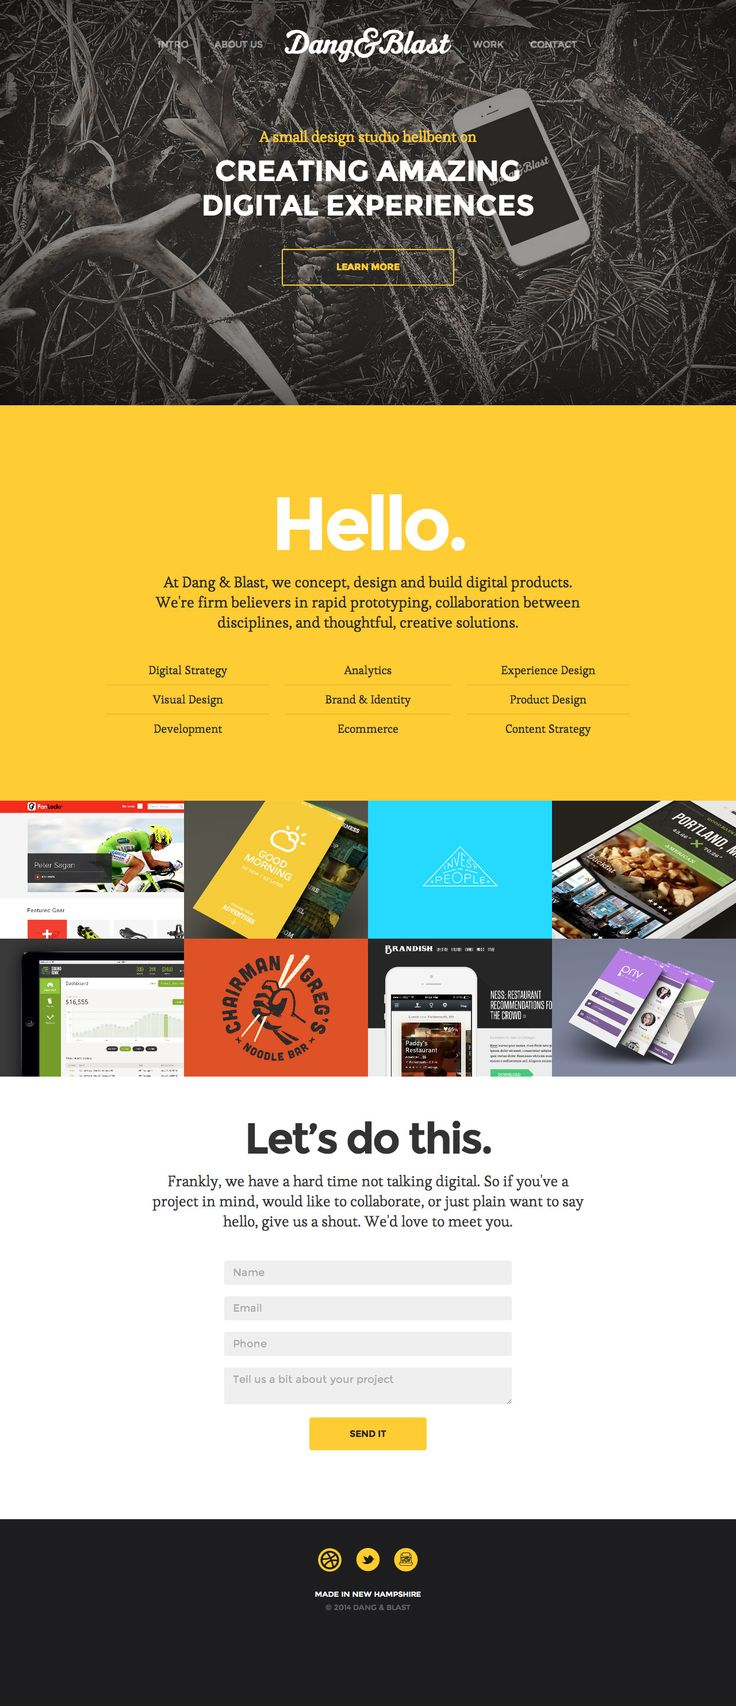 Responsive one pager for New Hampshire based design studio 'Dang & Blast' featuring an AJAX loading portfolio section.